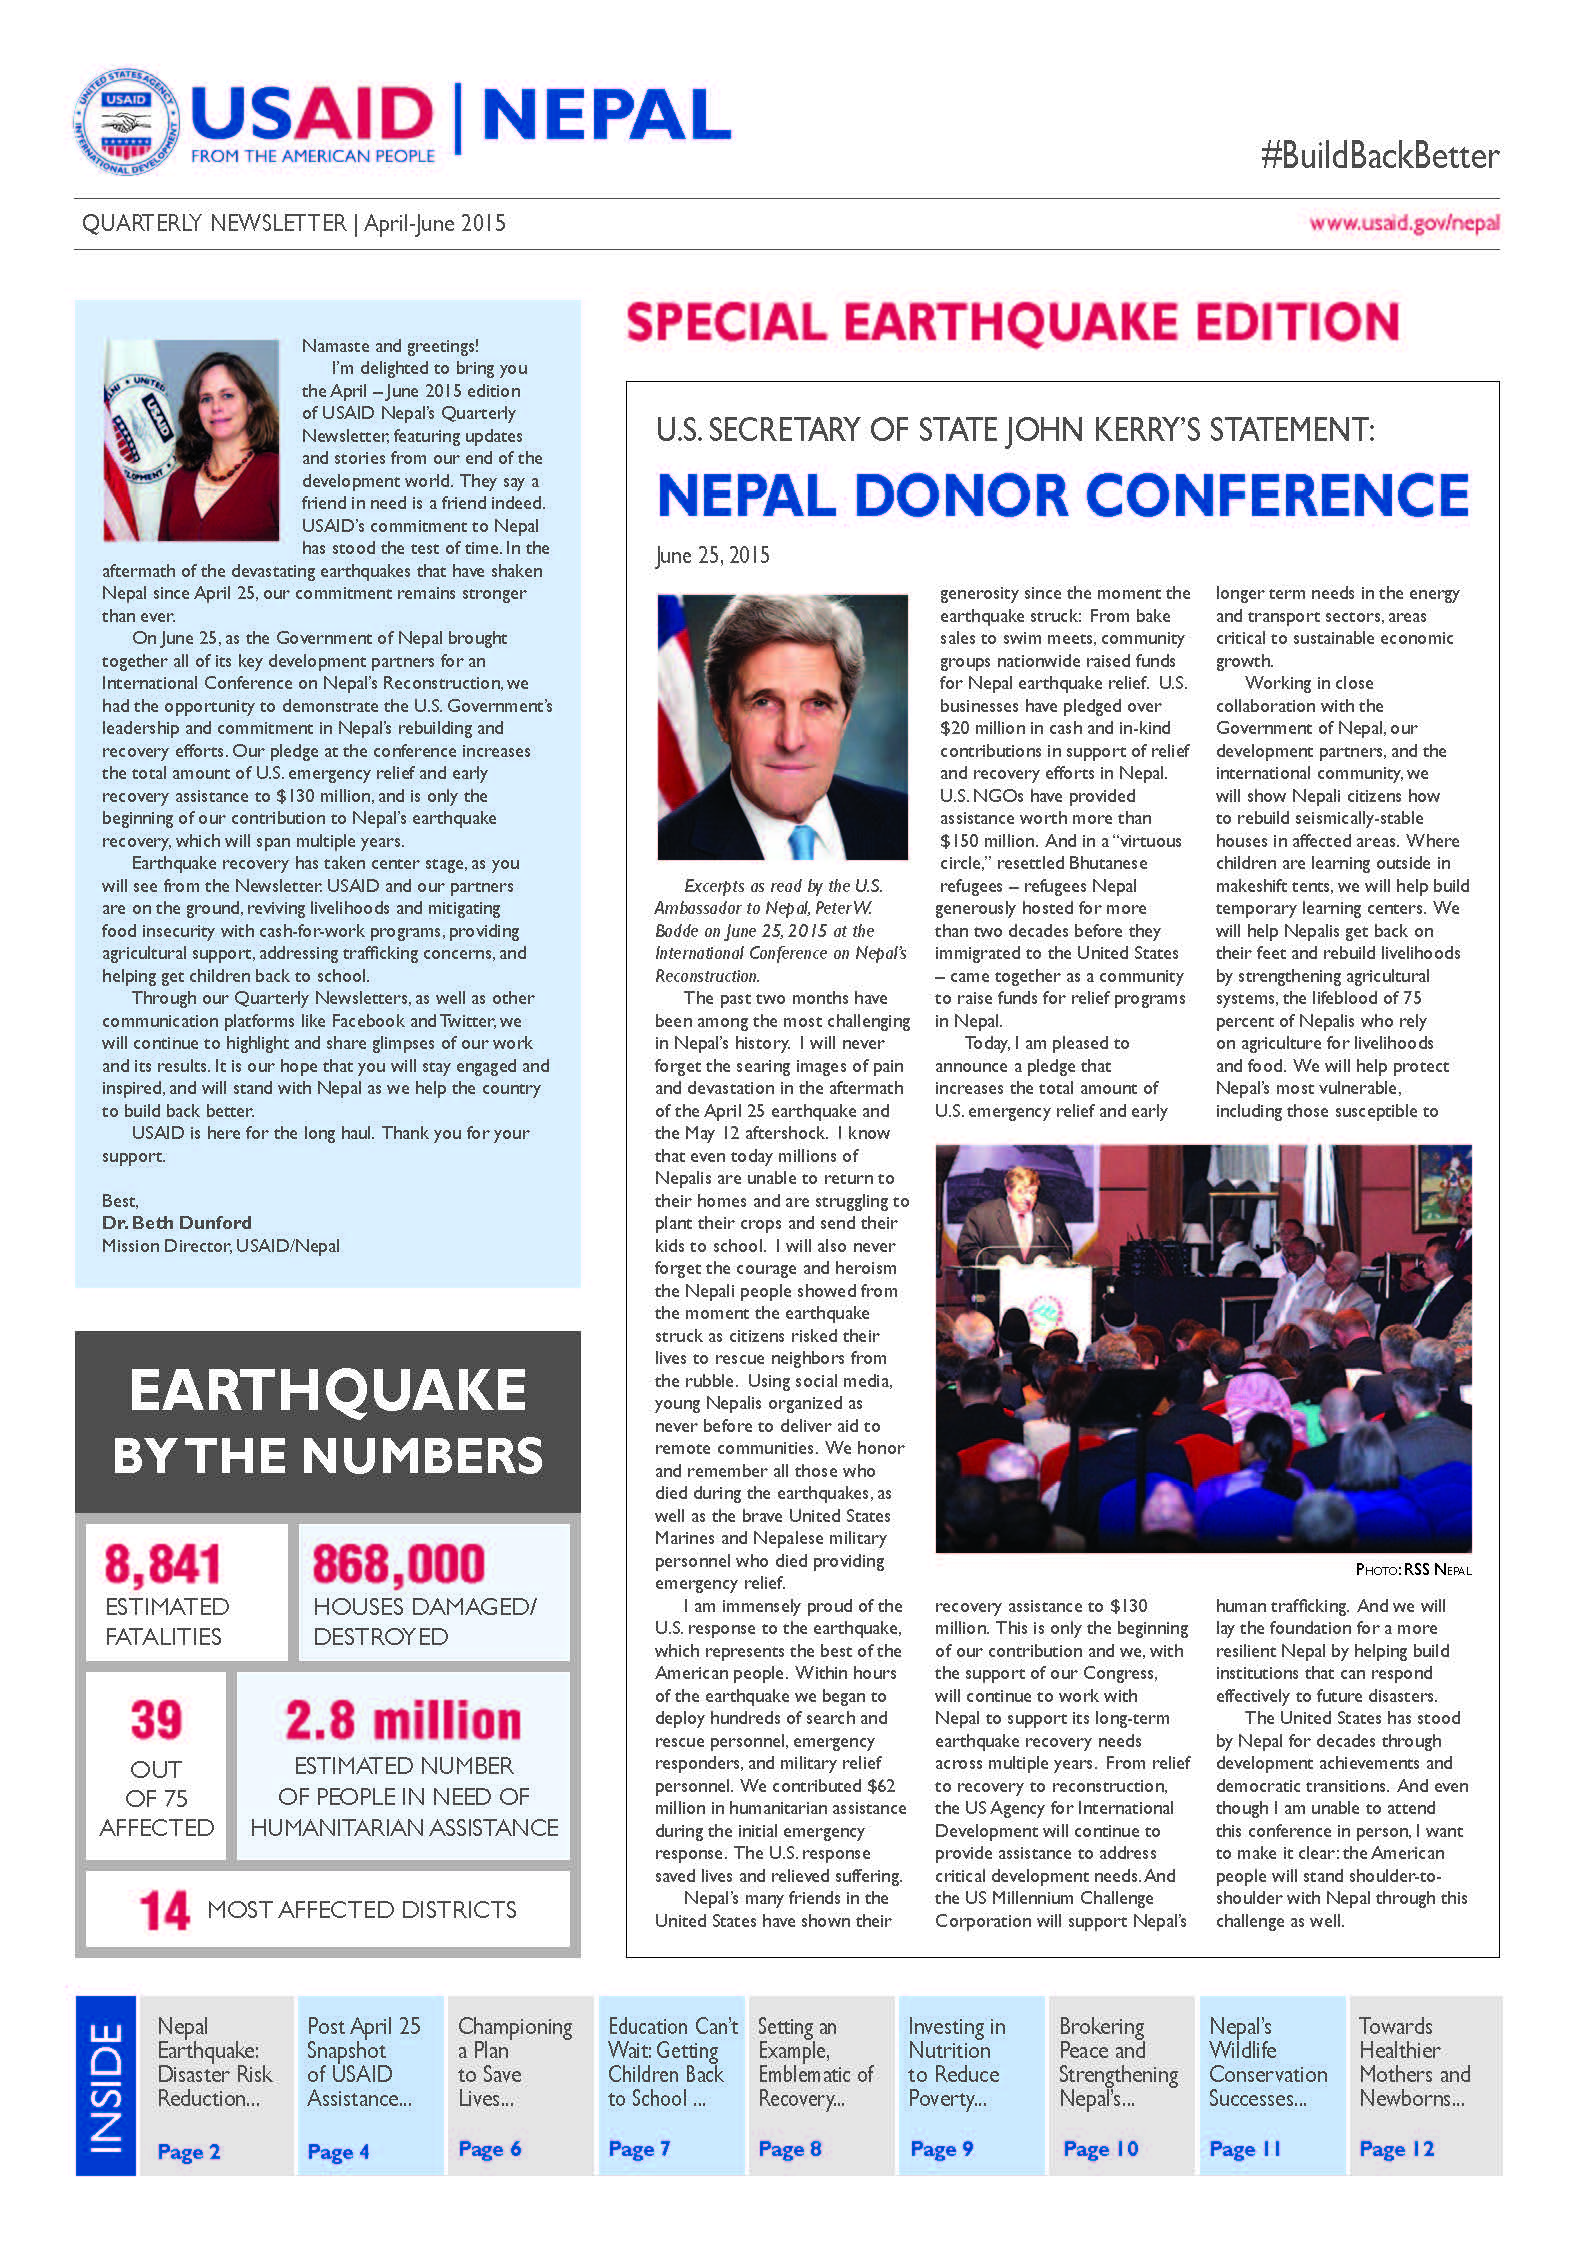 USAID NEPAL QUARTERLY NEWSLETTER: APRIL TO JUNE, 2015